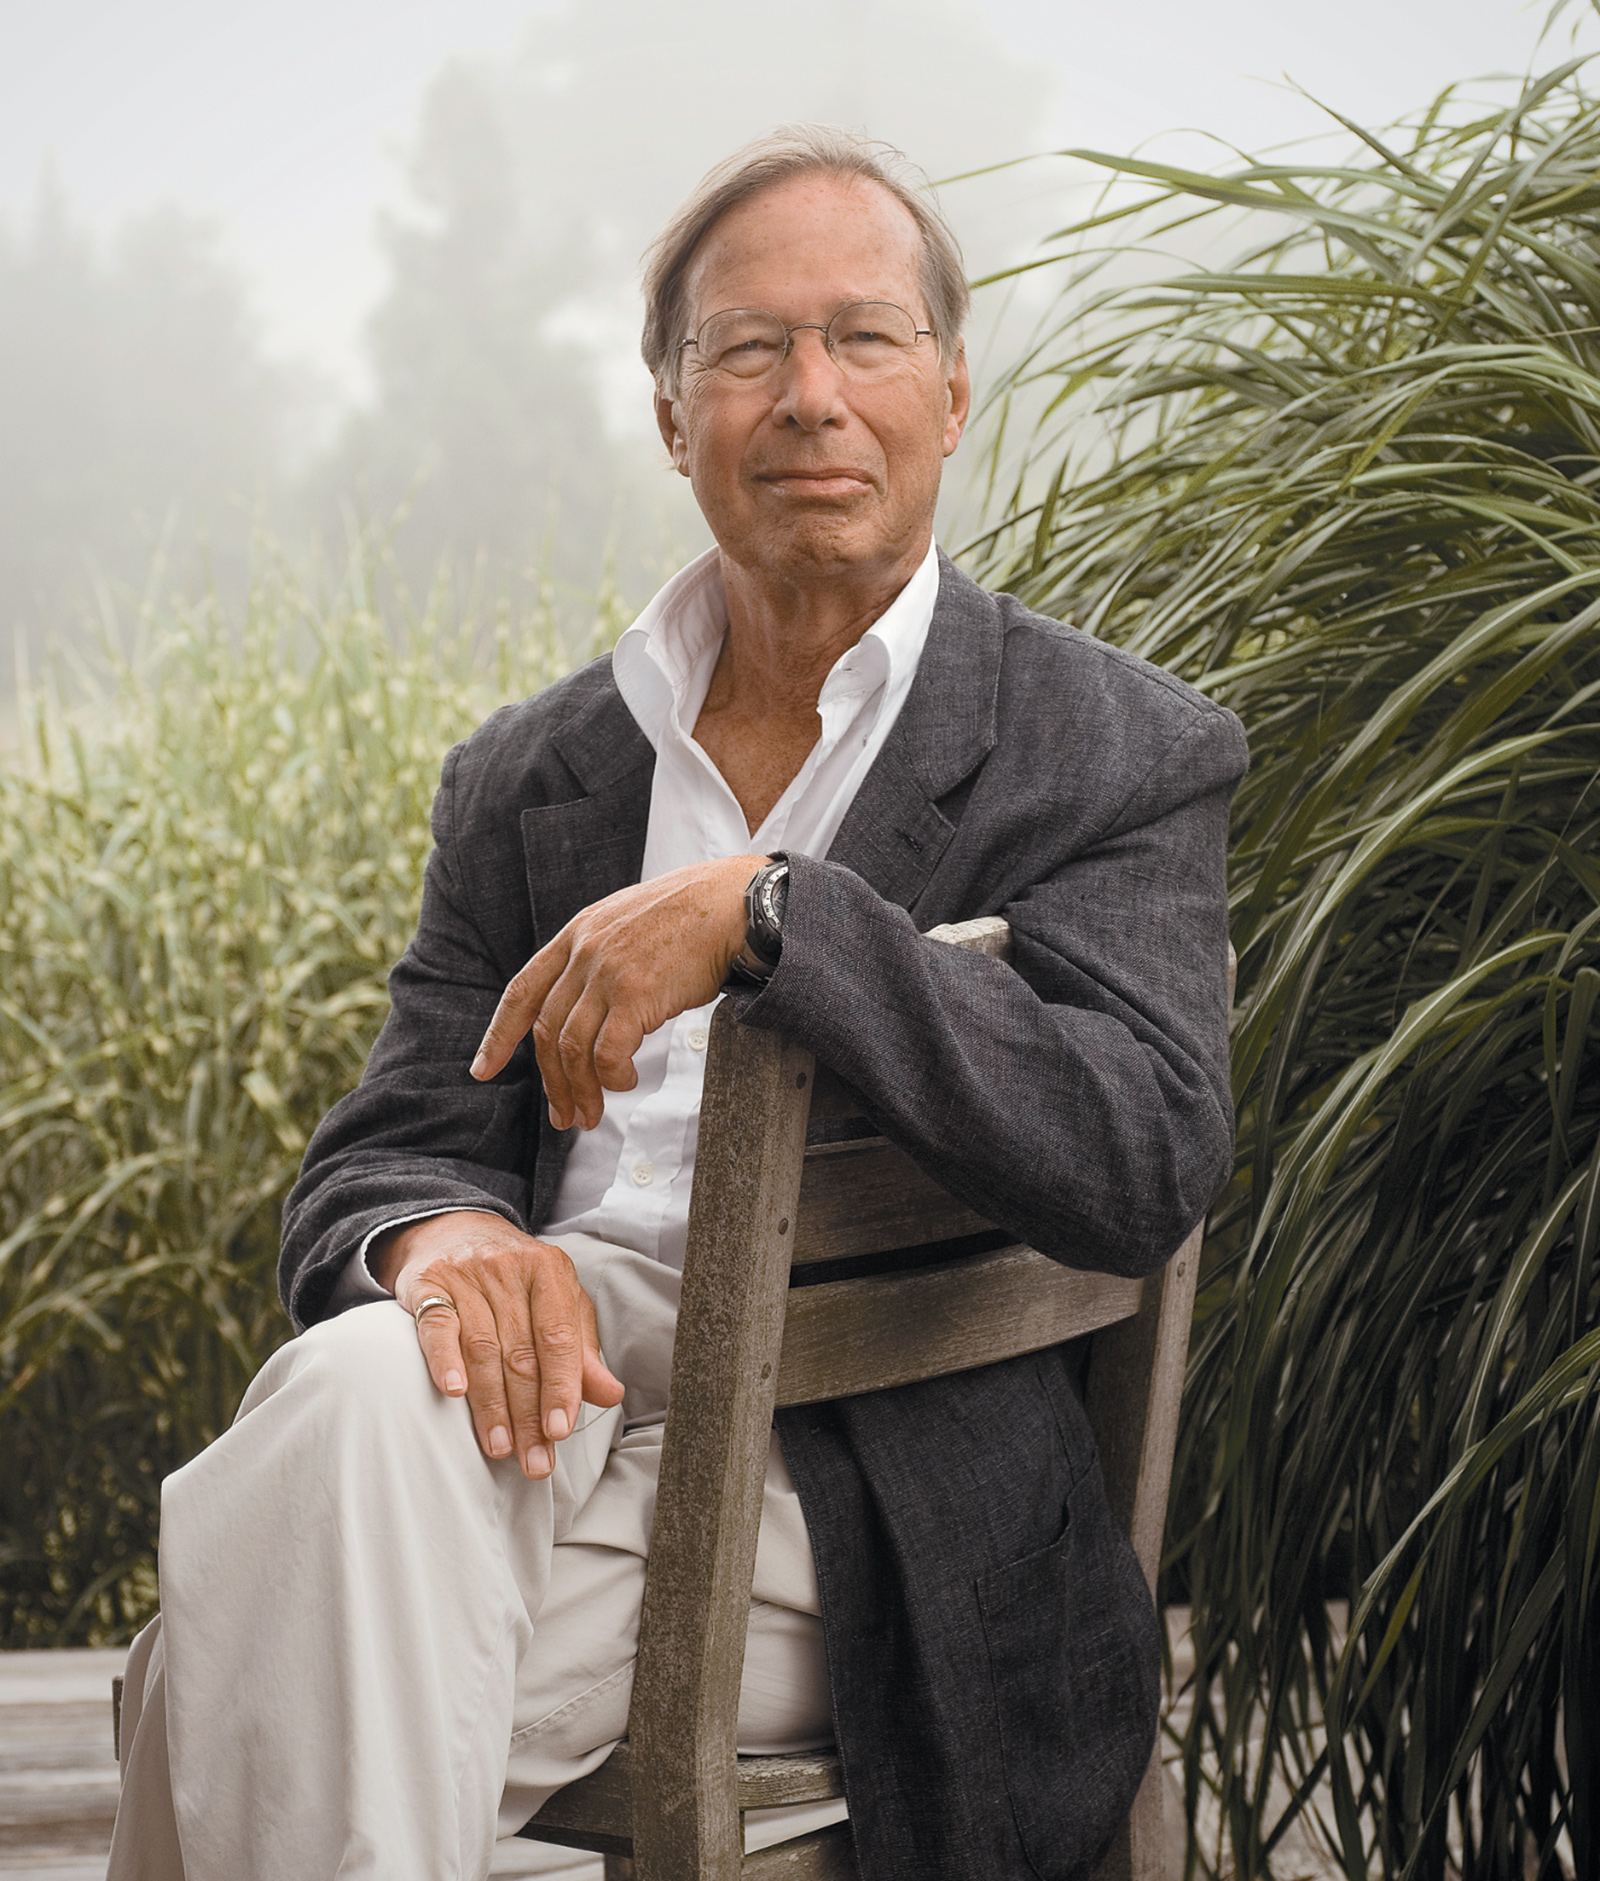 Ronald Dworkin, Martha's Vineyard, August 2005